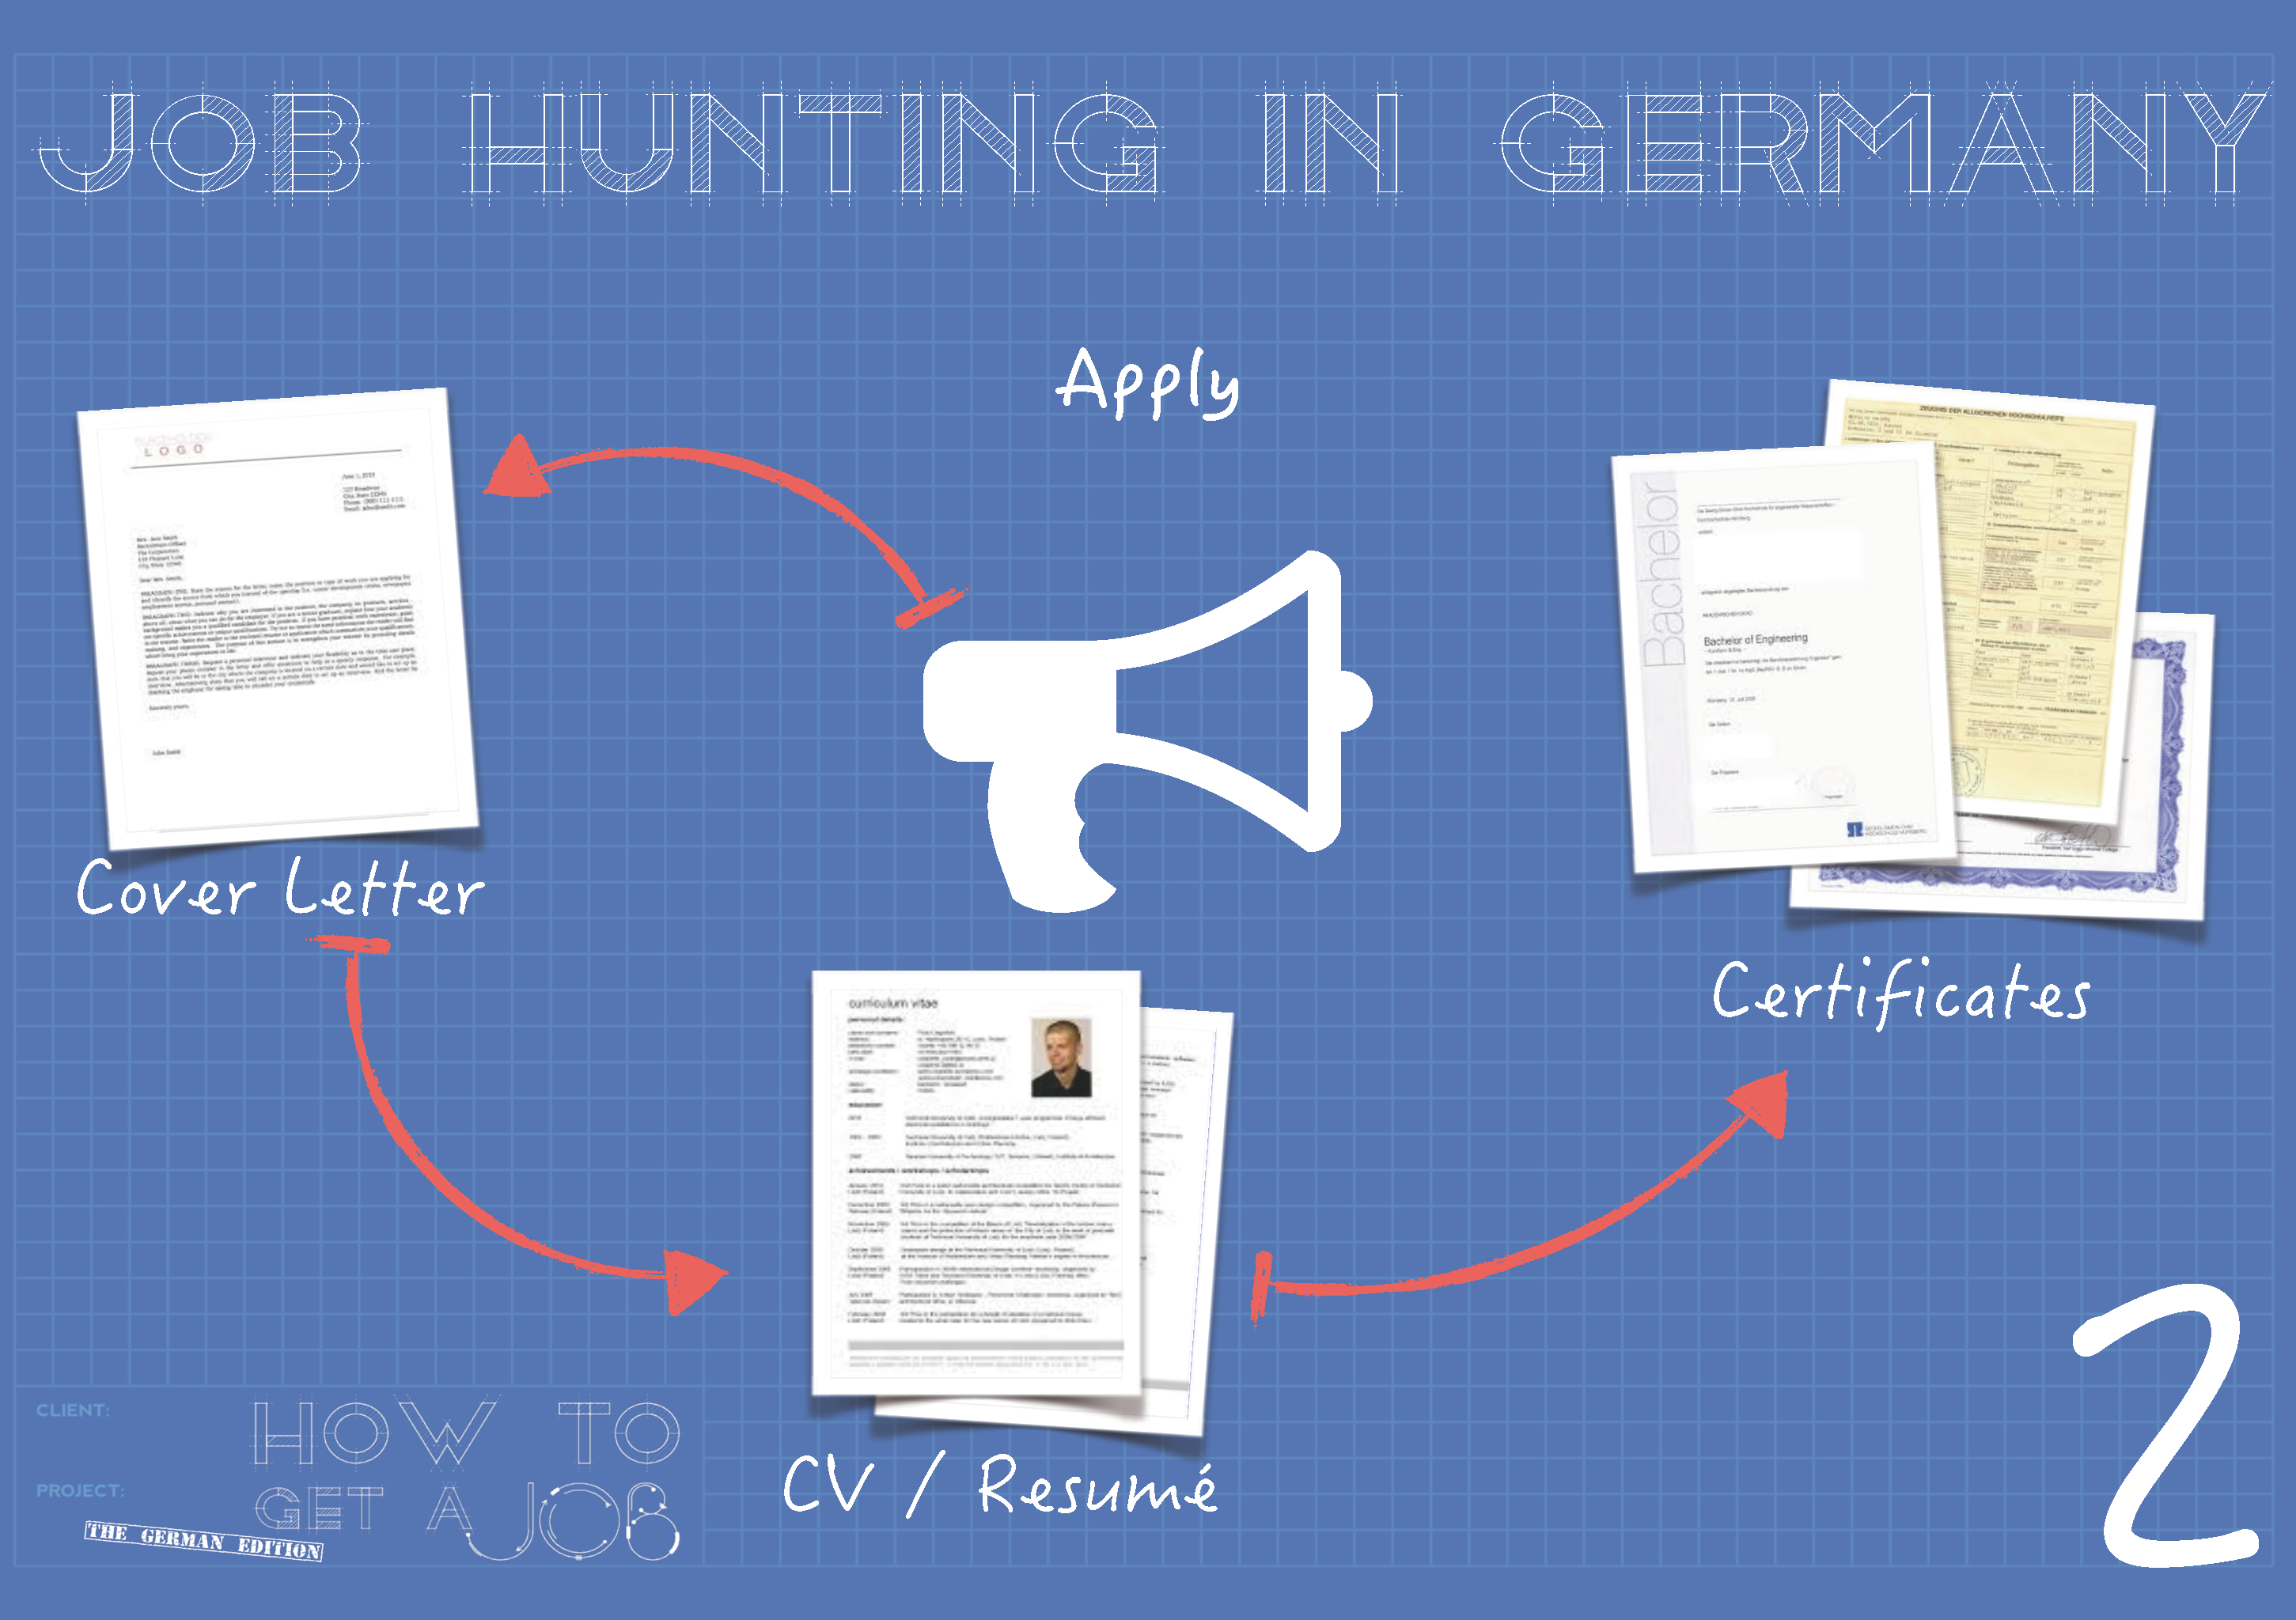 How to Get a Job in Germany Presentation Slide